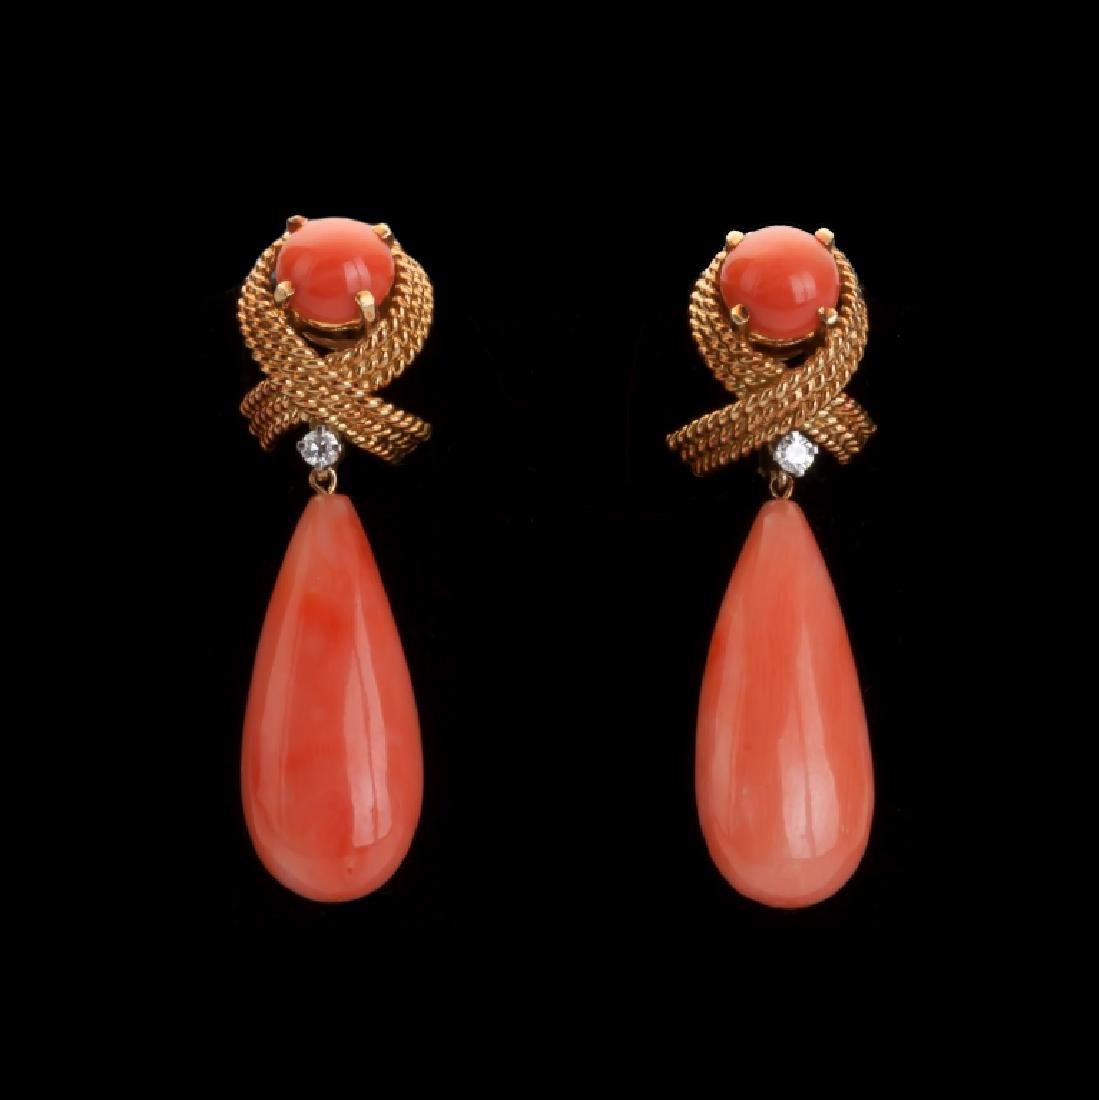 Tiffany & Co. Coral and Diamond 14K Gold Earrings